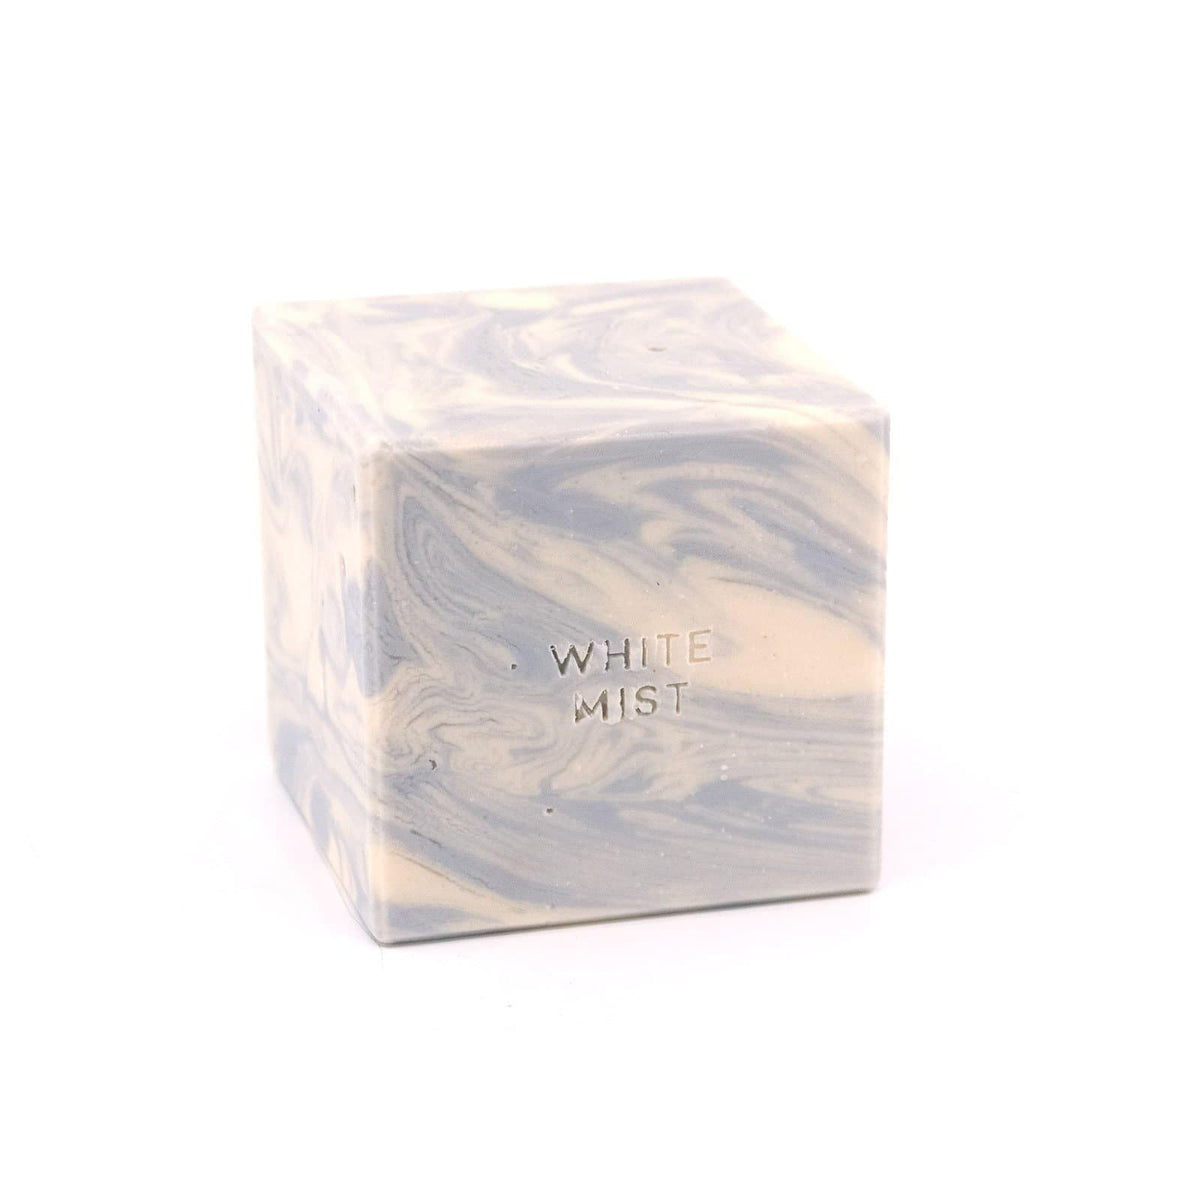 White Mist - Adlay & Kaolin Clay Bar Soap-Soap Bar-MOTE-310g-Totem Store